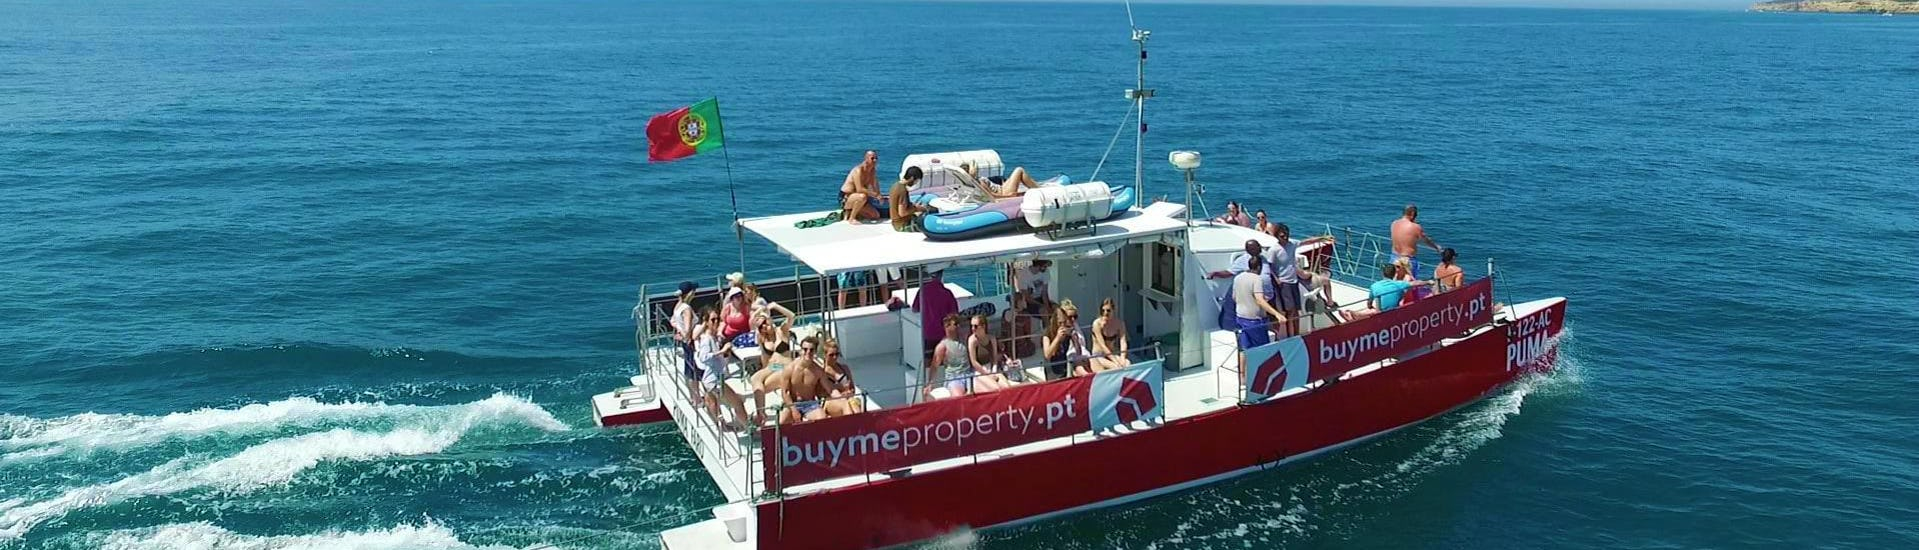 The passengers of a boat tour with Cruzeiros da Oura Vilamoura are enjoying the sun on board of the boat as they cruise along the Algarve Coast.